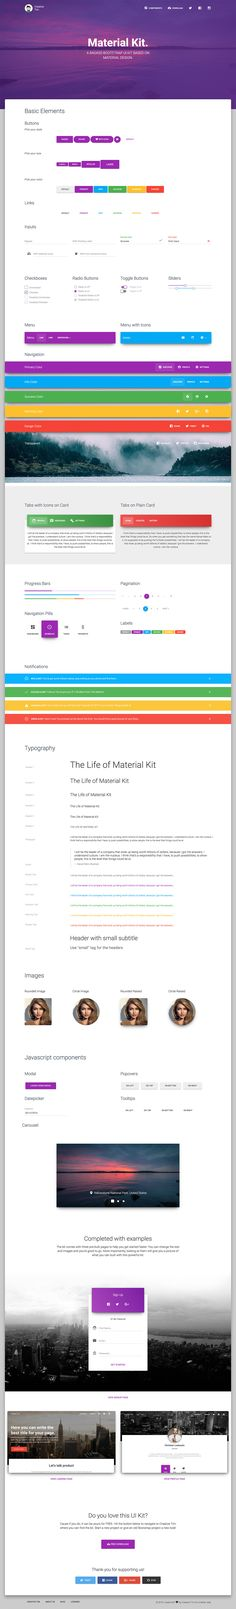 Material Kit is a Free Bootstrap UI Kit with a fresh, new design inspired by Google's material design.